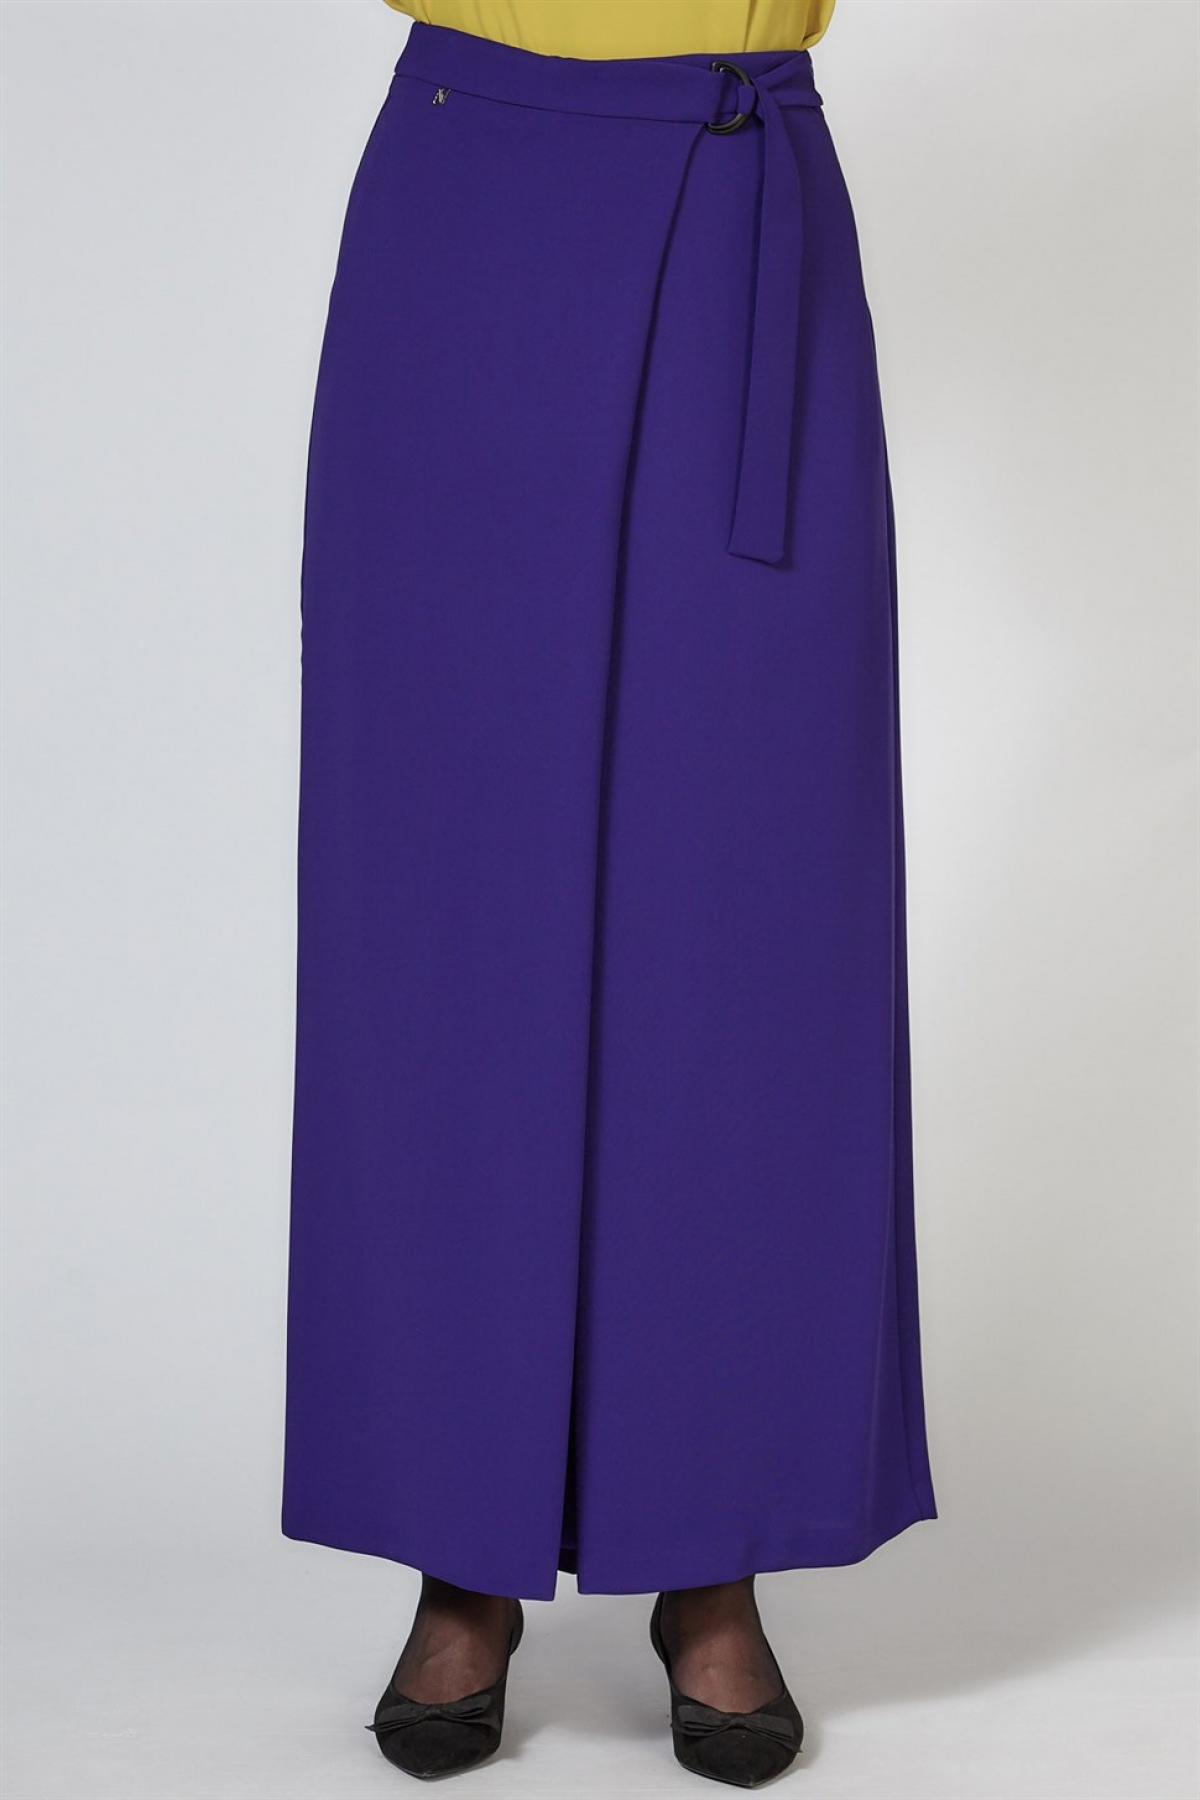 Armine Wide Leg Women's Pants - 9K2805 Purpule